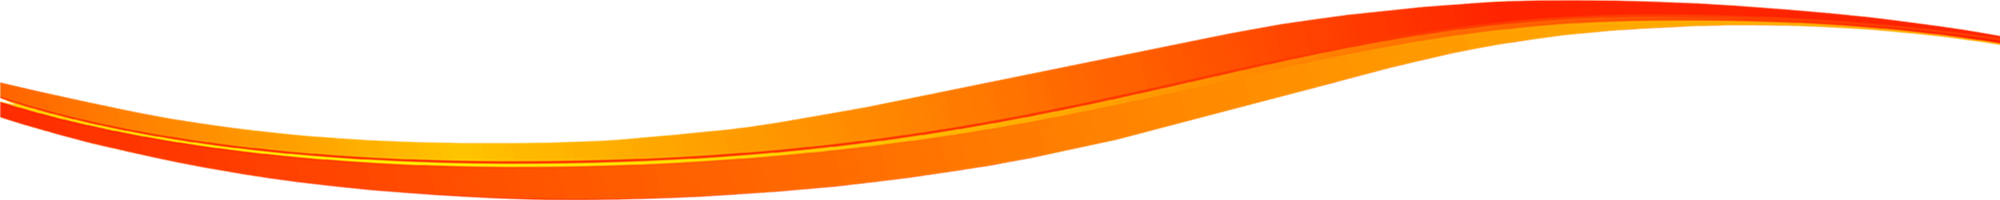 Orange clipart divider NutriStart Products more Learn